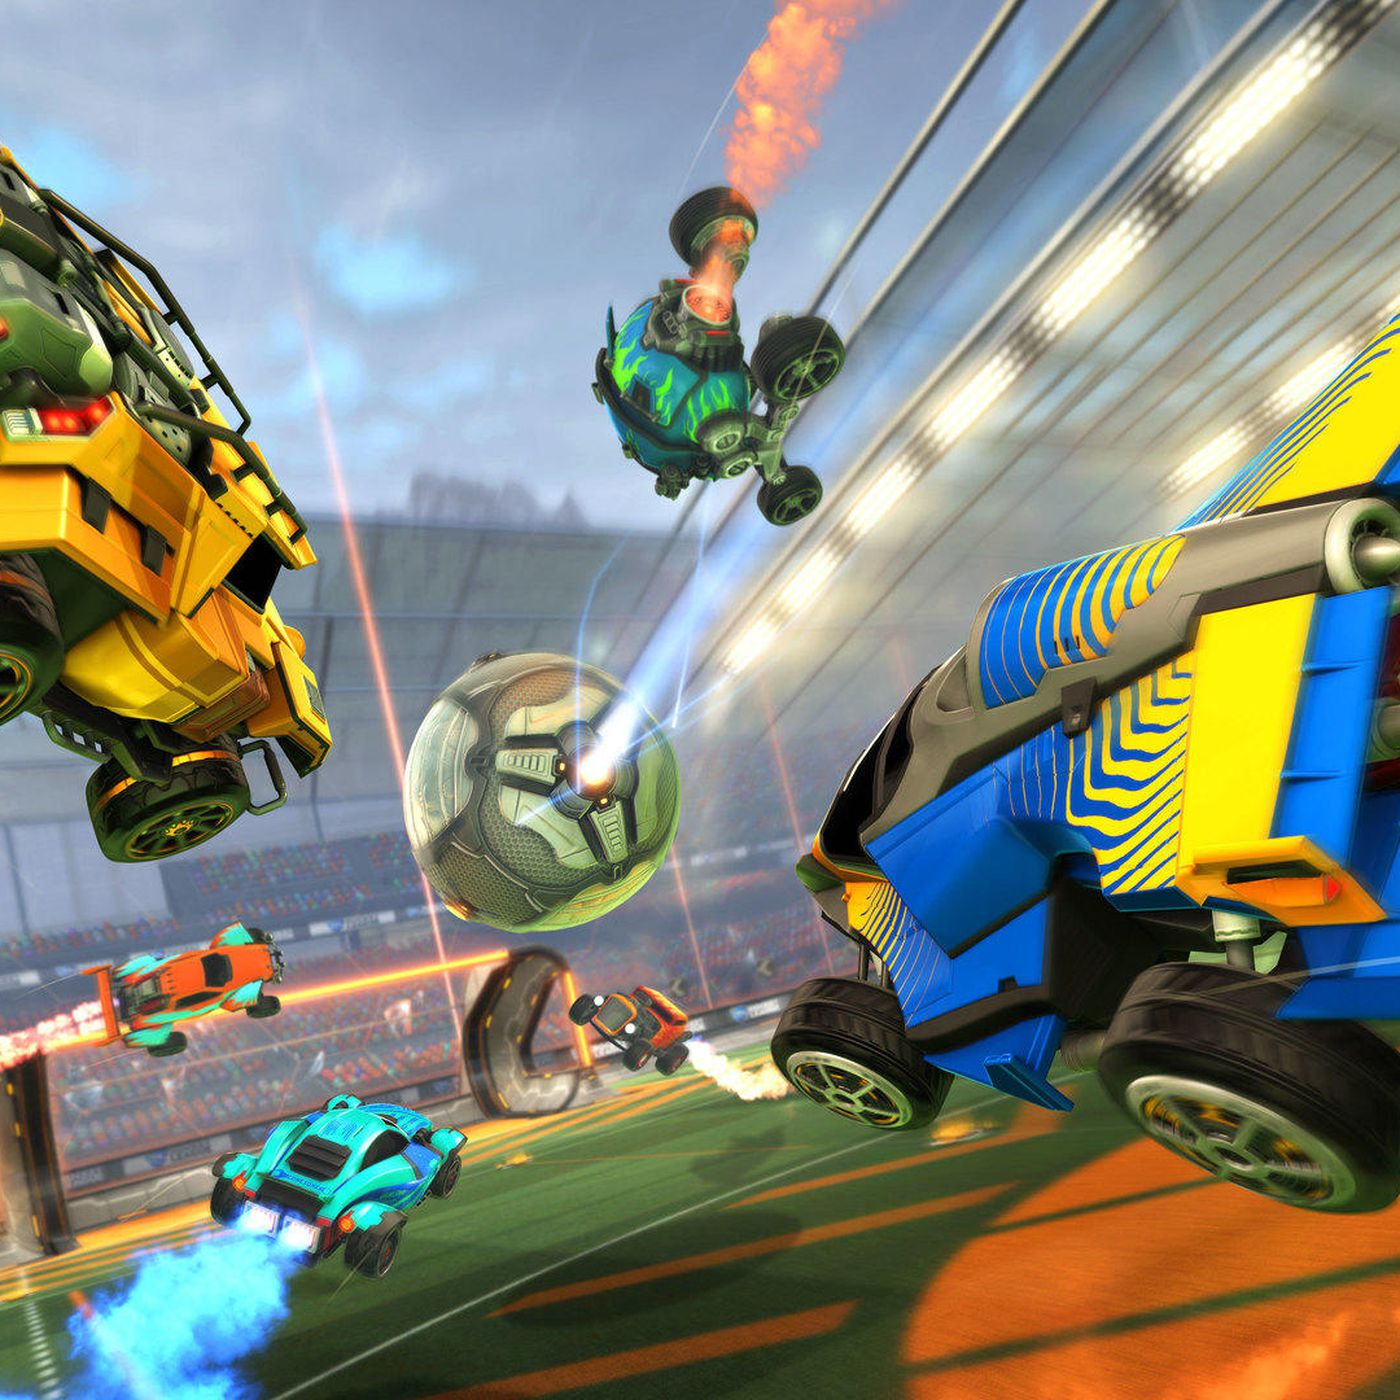 Epic buys Rocket League developer Psyonix, strongly hints it will